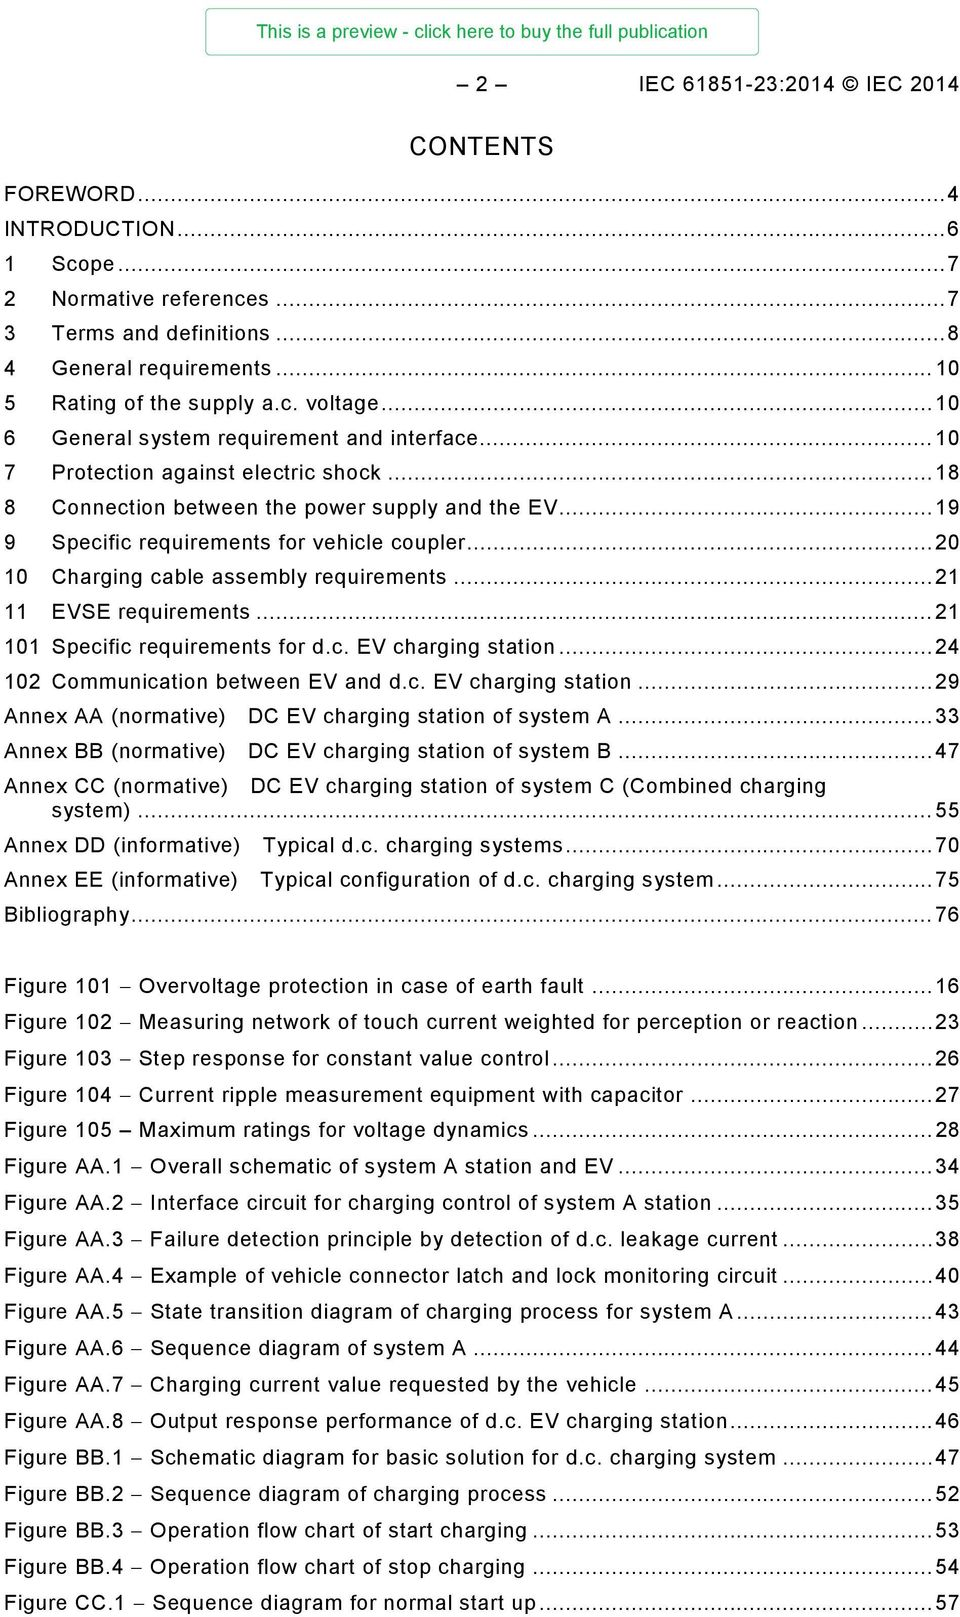 .. 20 10 Charging cable assembly requirements... 21 11 EVSE requirements... 21 101 Specific requirements for d.c. EV charging station... 24 102 Communication between EV and d.c. EV charging station... 29 Annex AA (normative) DC EV charging station of system A.